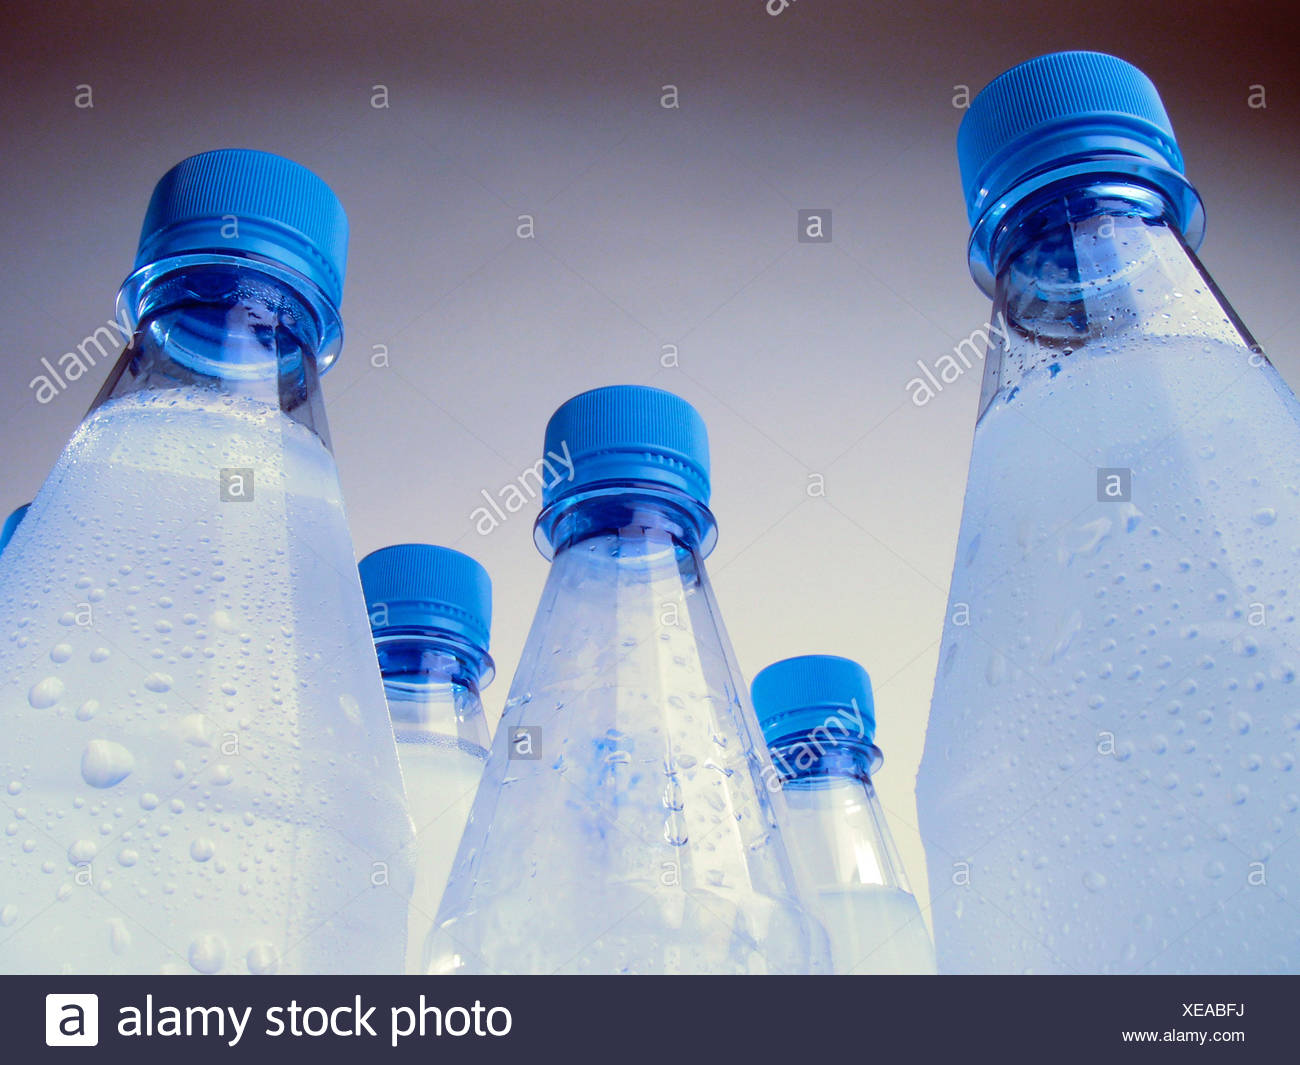 mineral water bottles - Stock Image